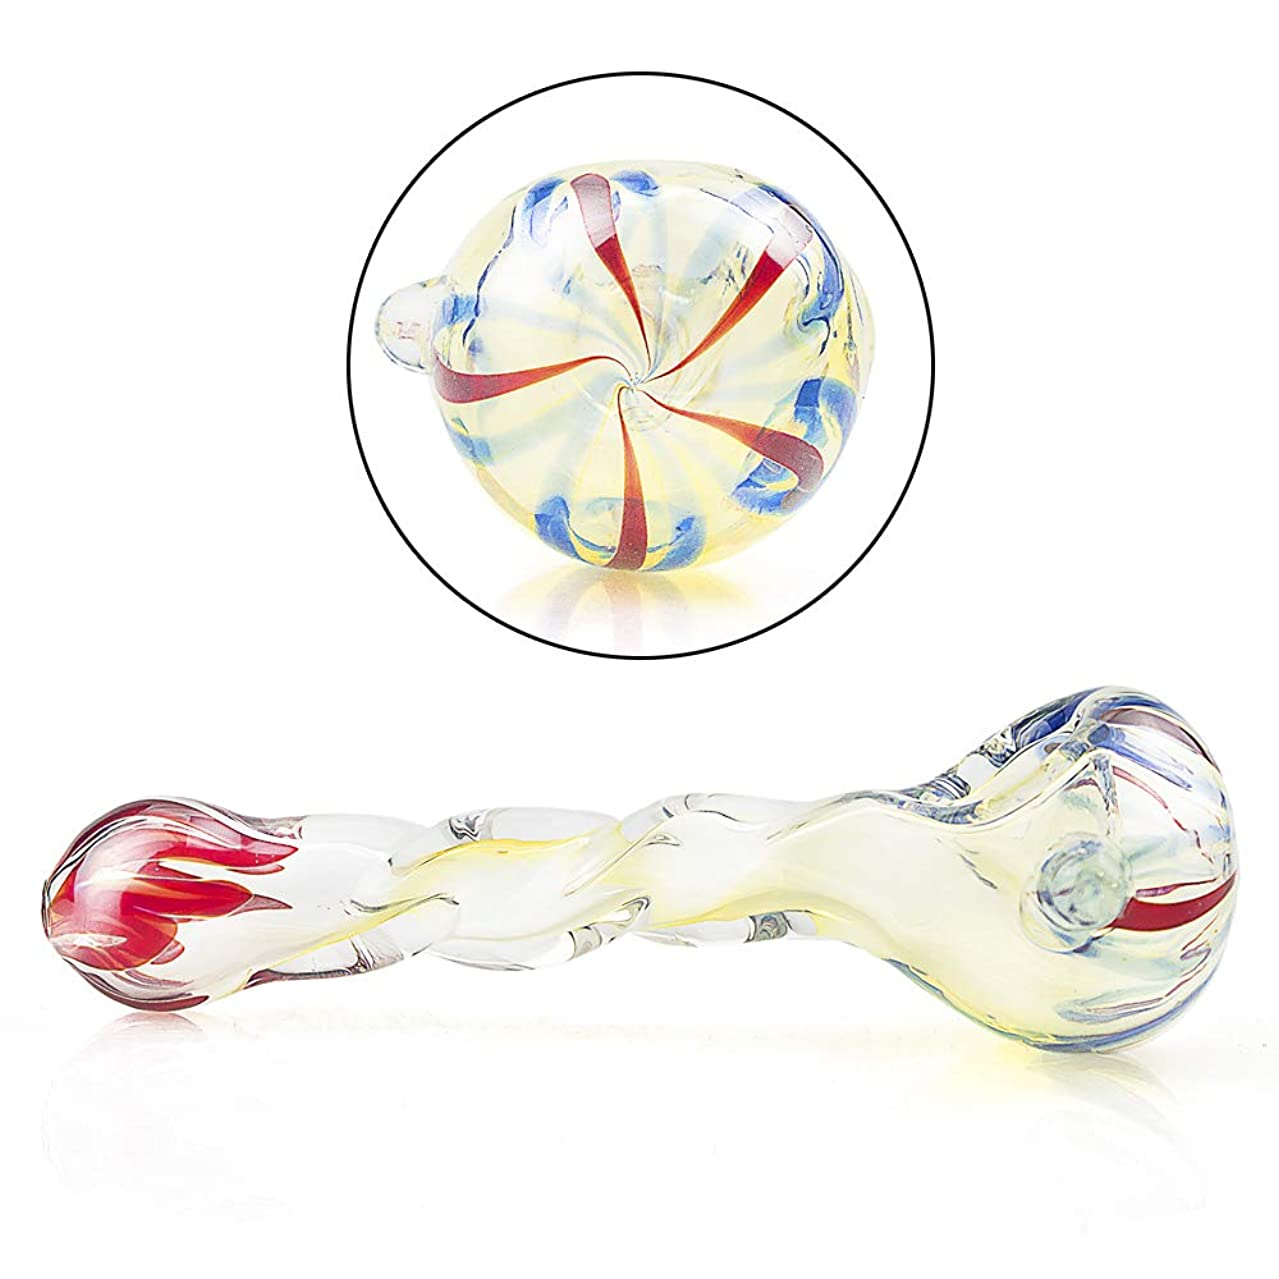 SKMMP Handmade Newest Pipe4.7 Inch Long Heat Resistant Art Collection Unbreakable Yellow Spiral Glass(Color as Shown)